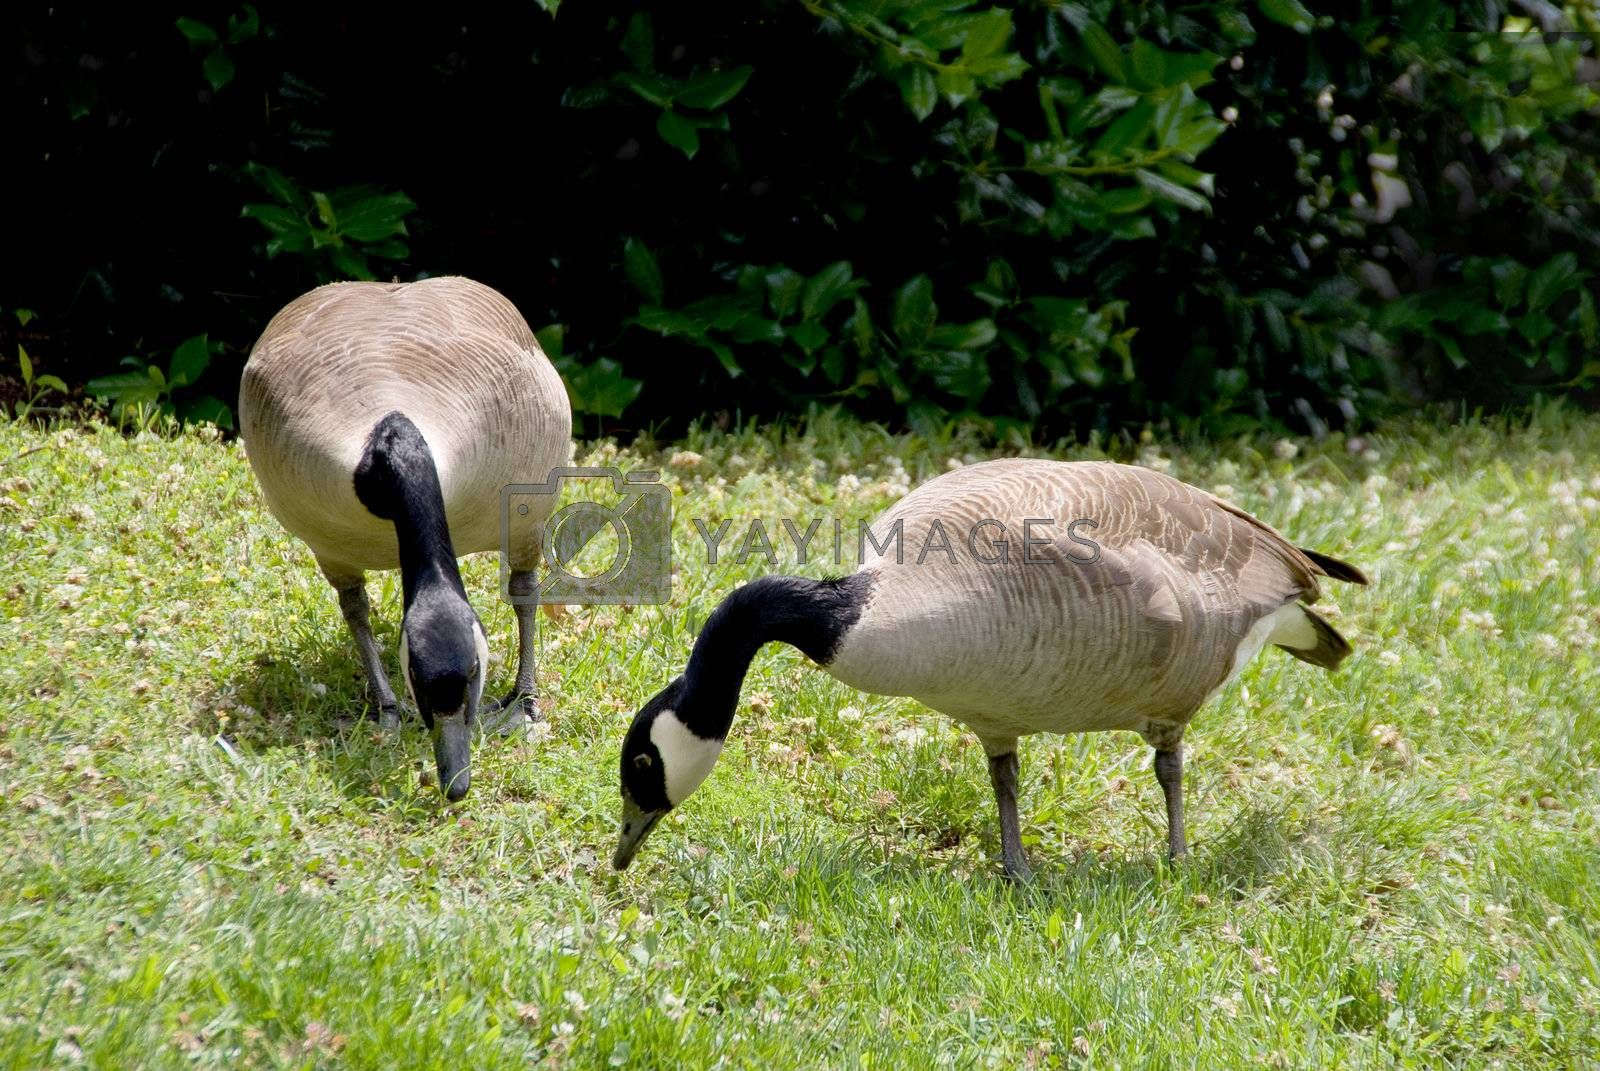 A pair of Canadian Geese grazing in a field.